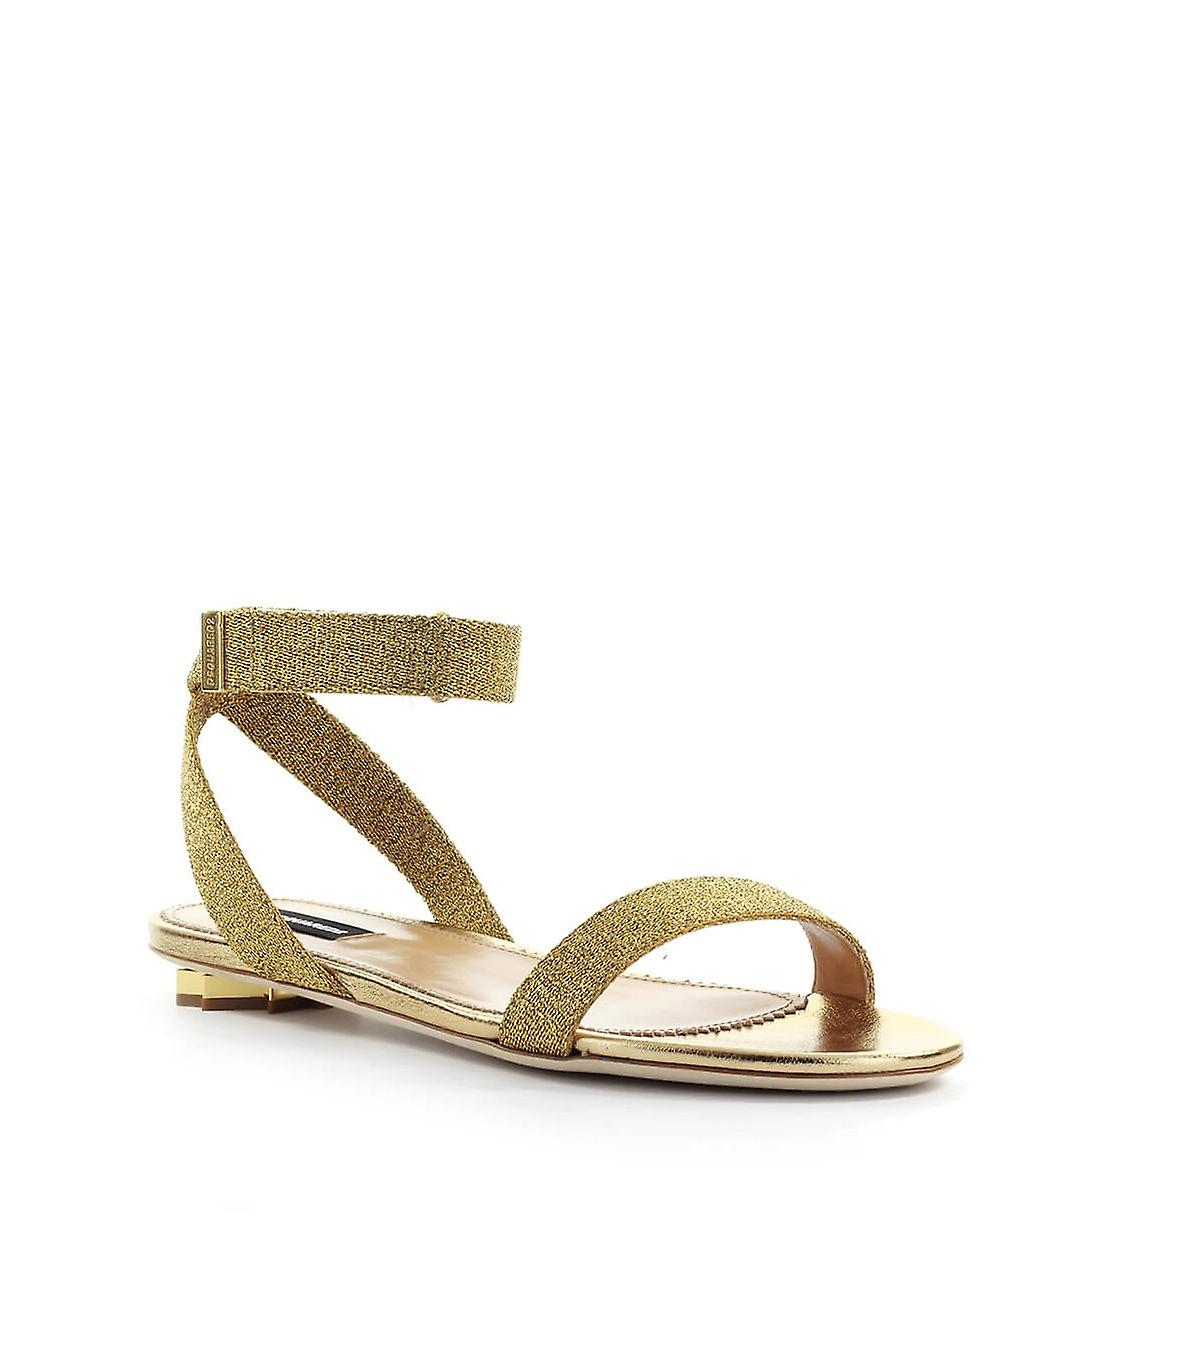 Dsquared2 Gold Nappa Leather Sandal